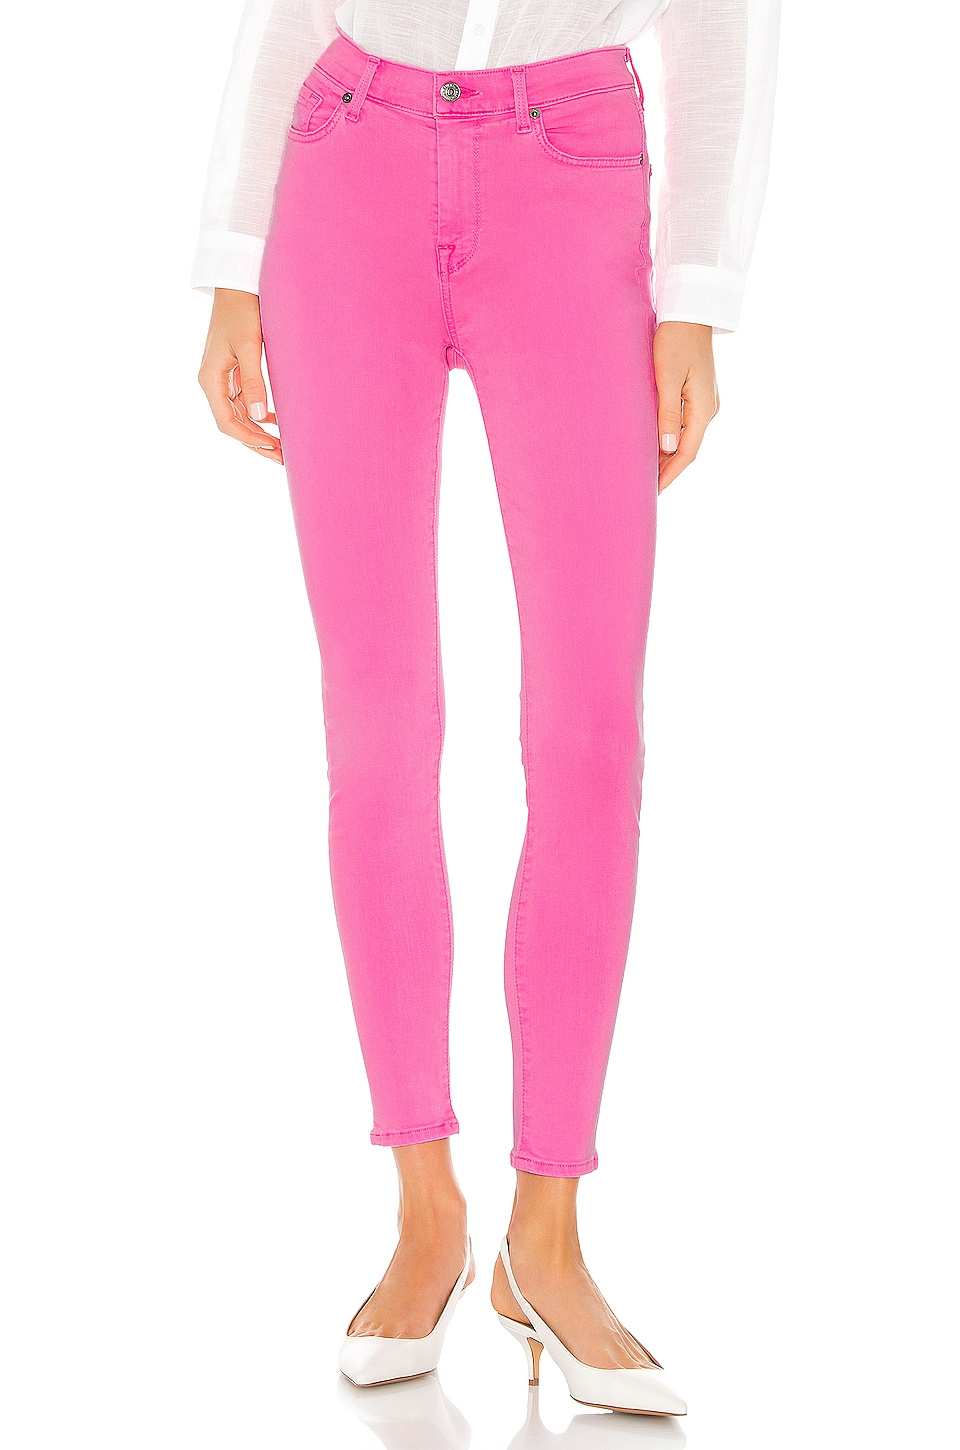 7 For All Mankind The High Waisted Ankle Skinny in Neon Pink